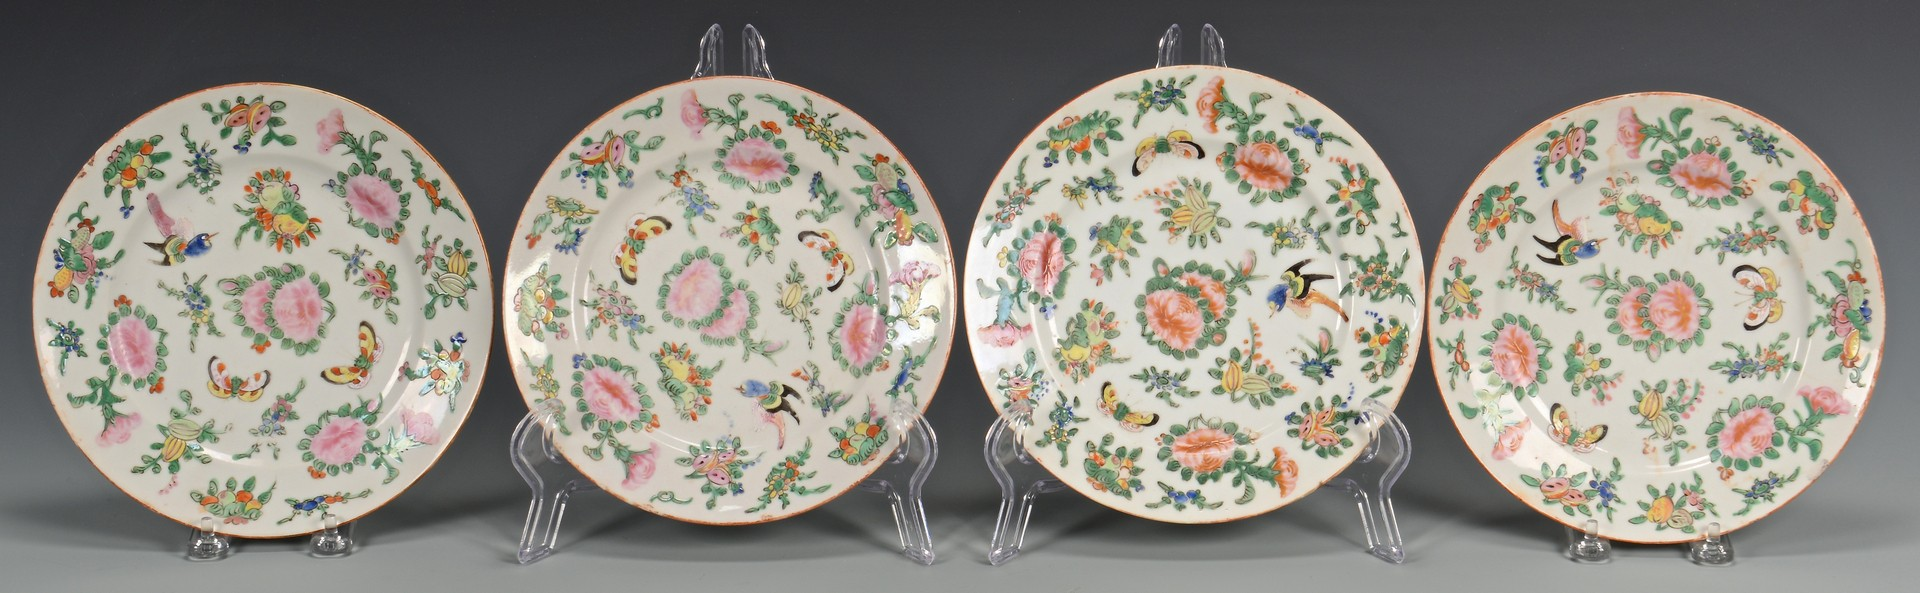 Lot 710: 8 Famille Rose Butterfly Plates & 3 Mugs